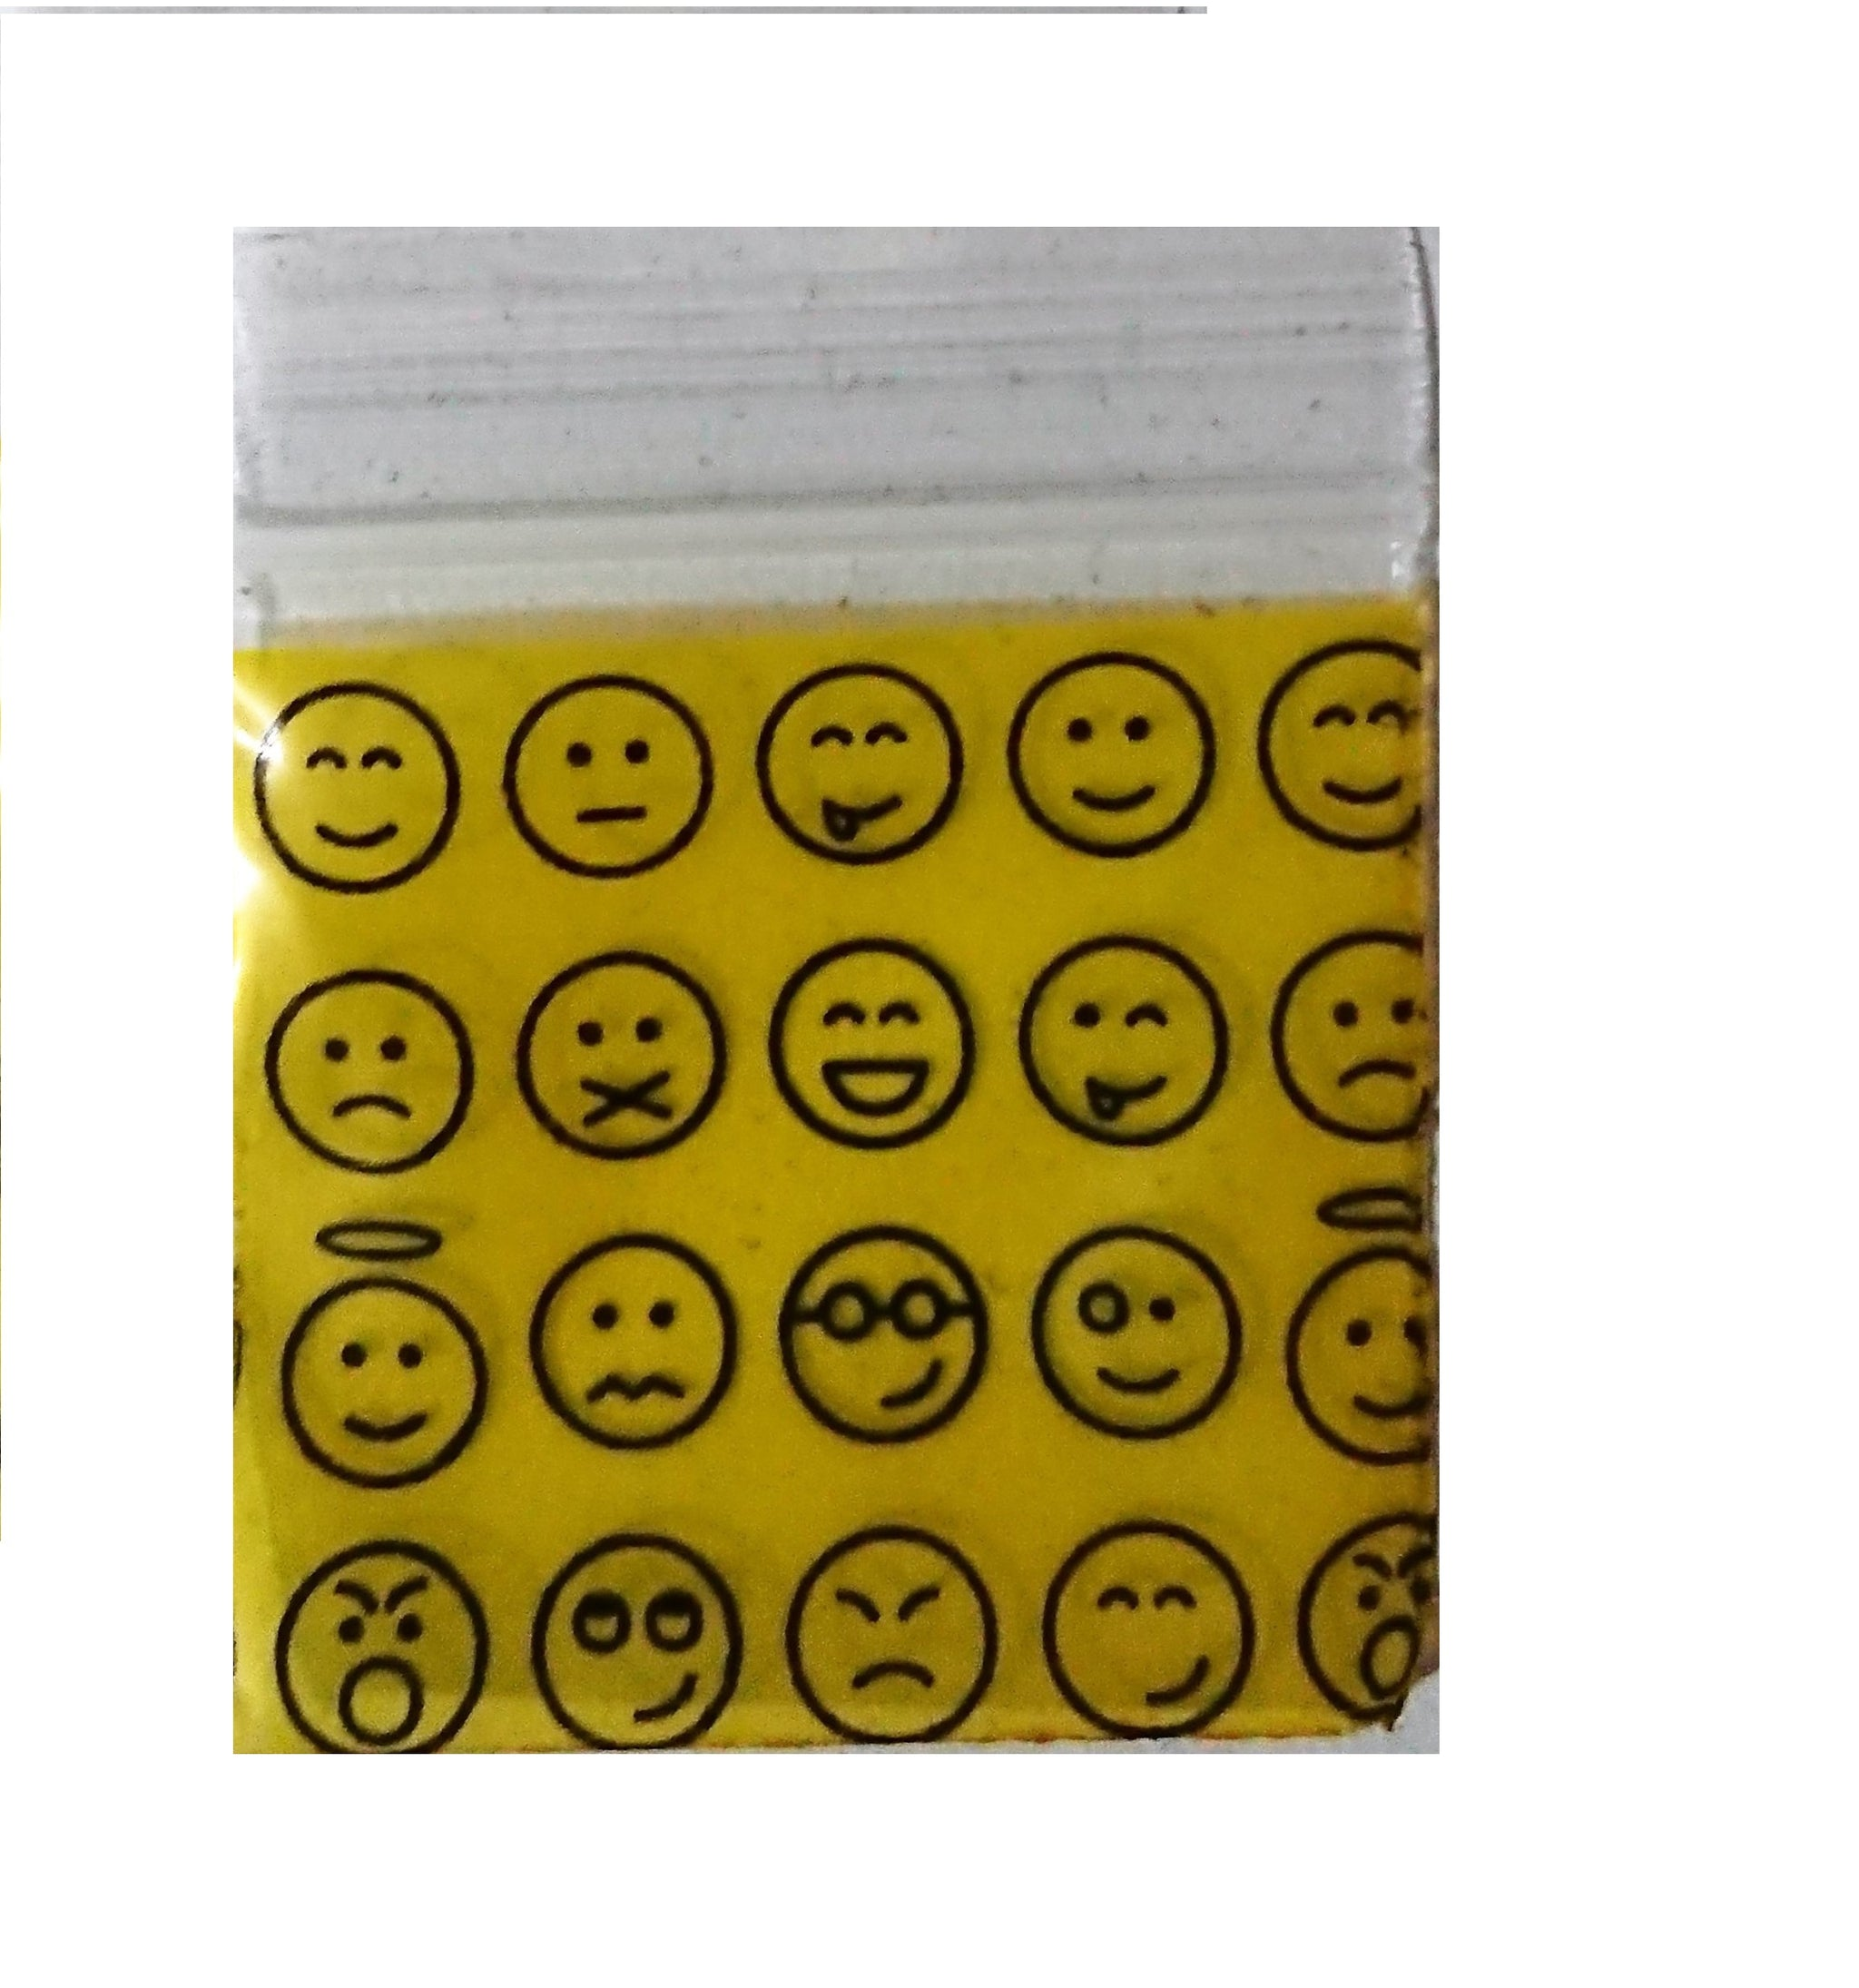 Emoji Apple Ziplock Baggies 1515, Apple Mini Ziplock Bags,Cheeky Ninjas